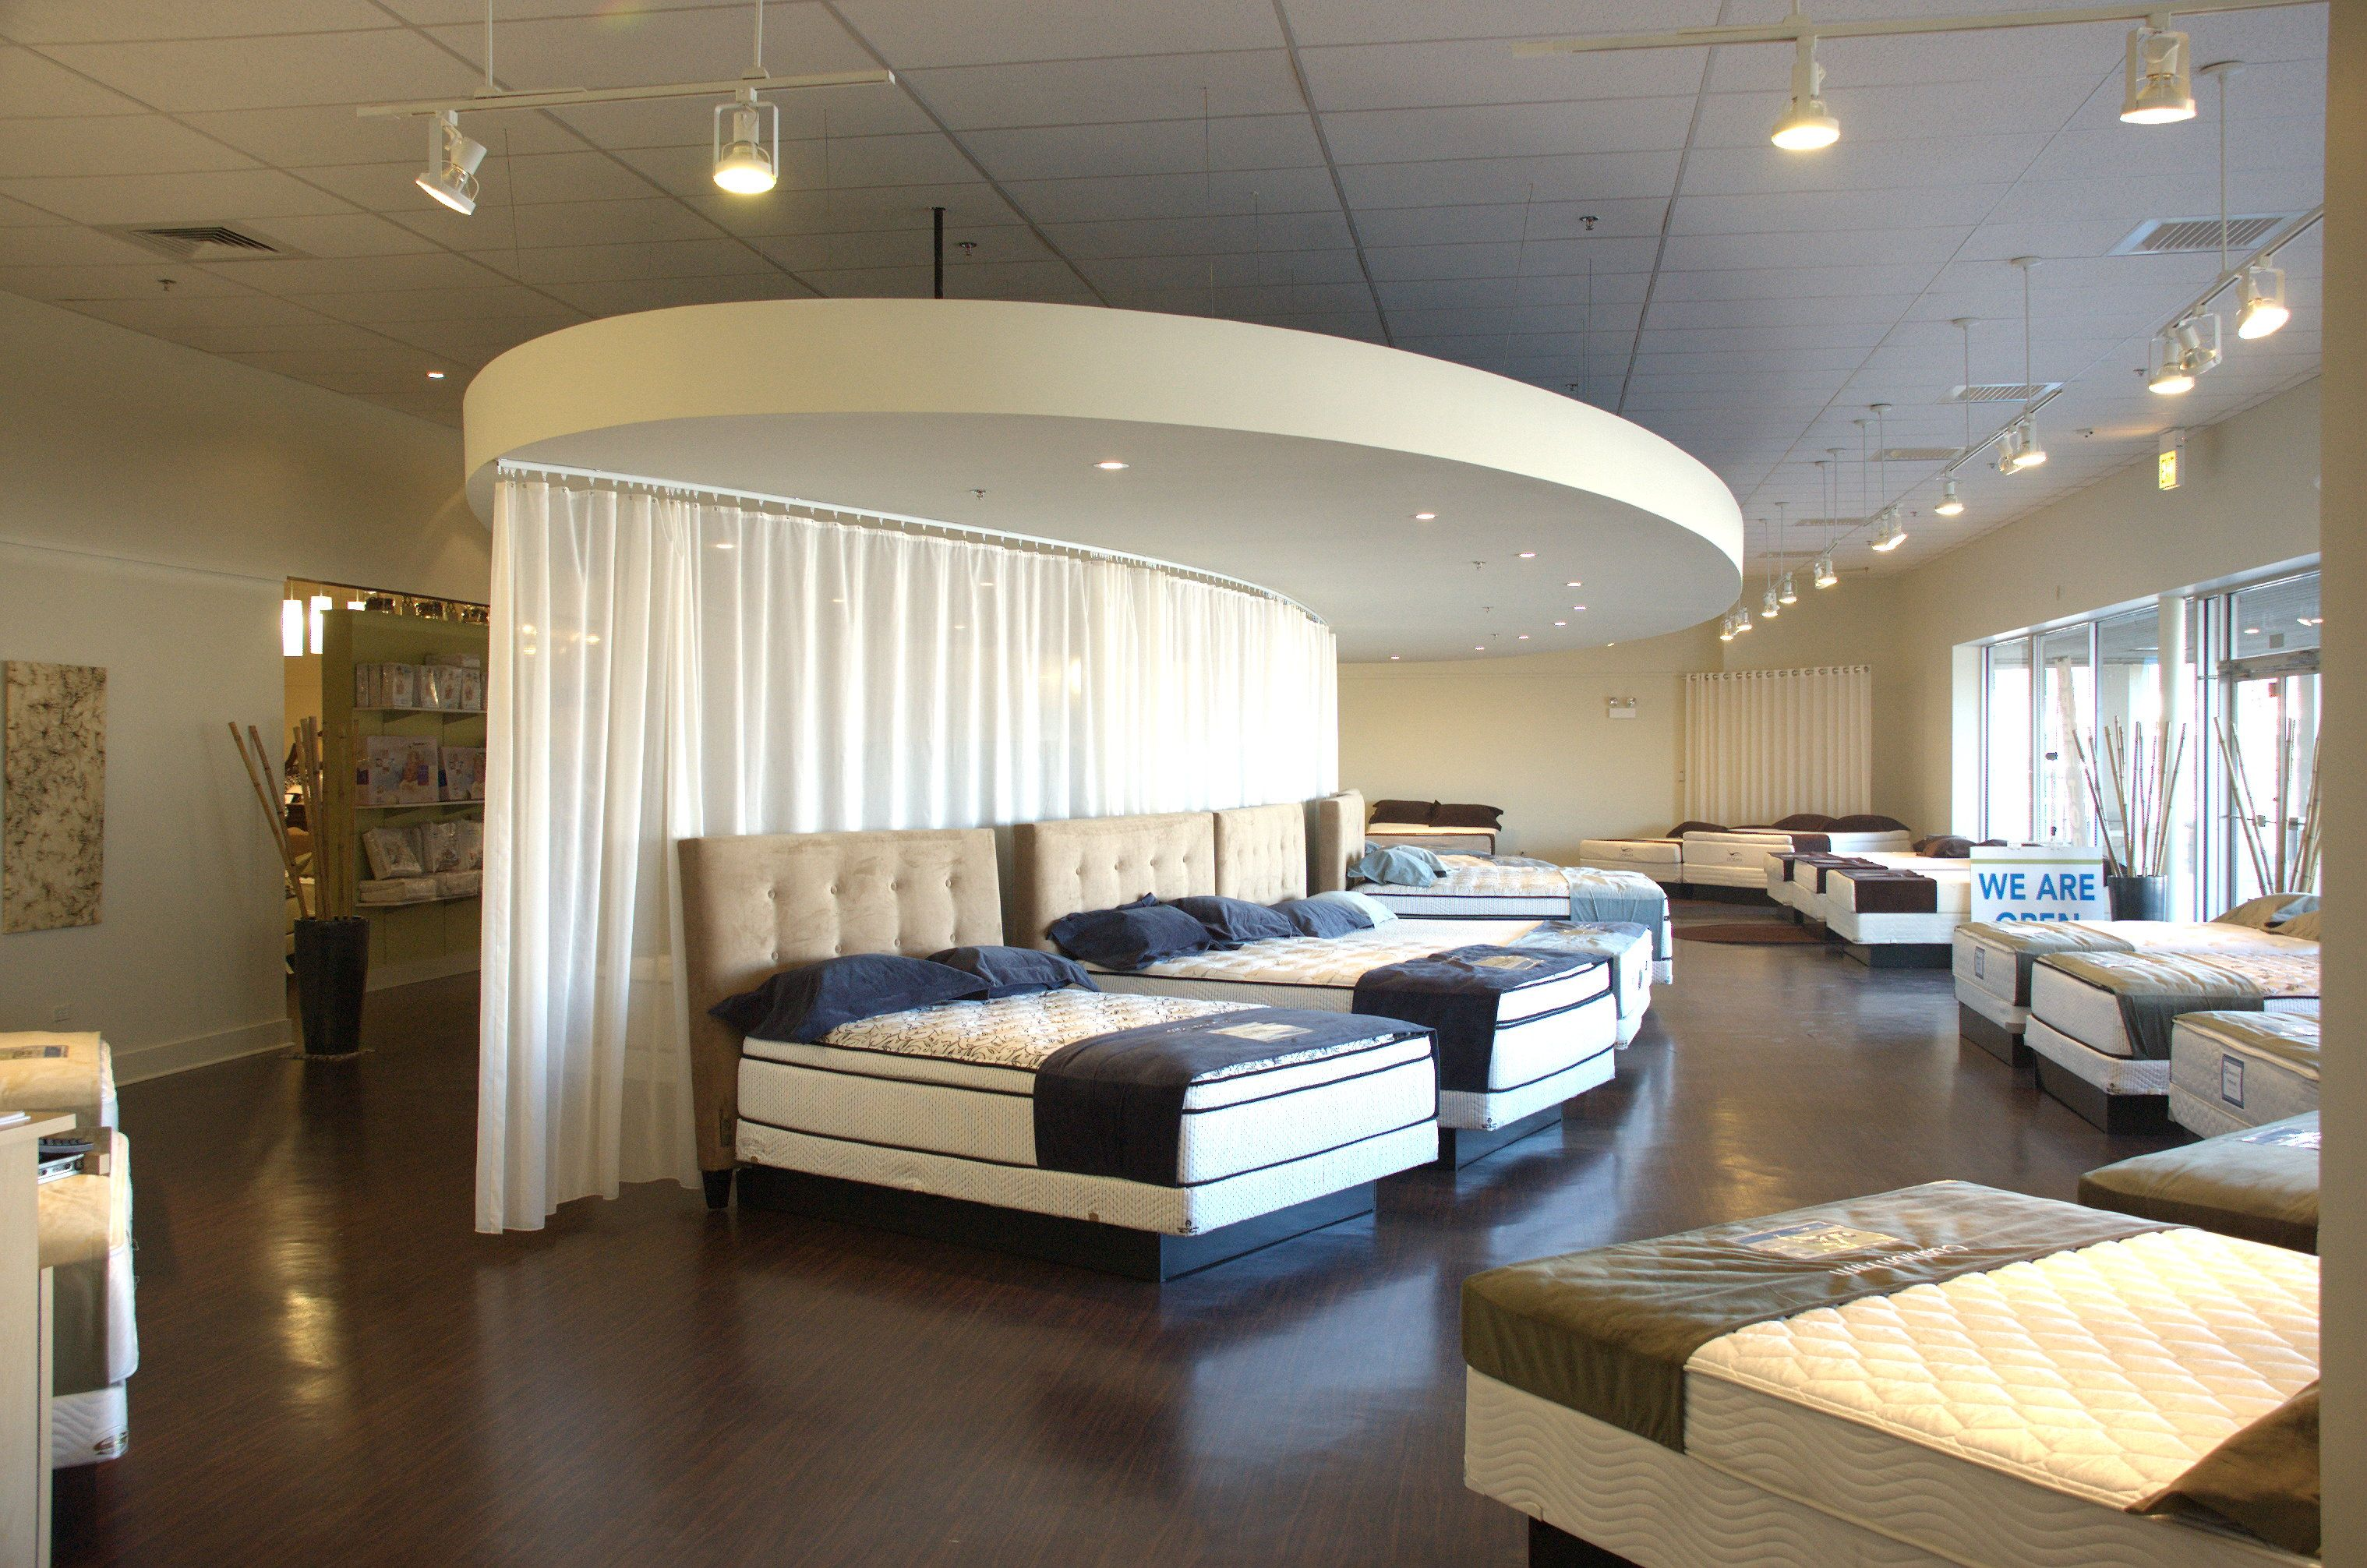 reading s apartment affordable avon best daybeds bernie natick modern design lots onda ma jordan bedroom jordans mdf from and friday phyls of end mattress by discount boston decor outlet in esf stores mattresses furnitures set black bobs high michael dressers style fuddruckers big with storage furniture superb home